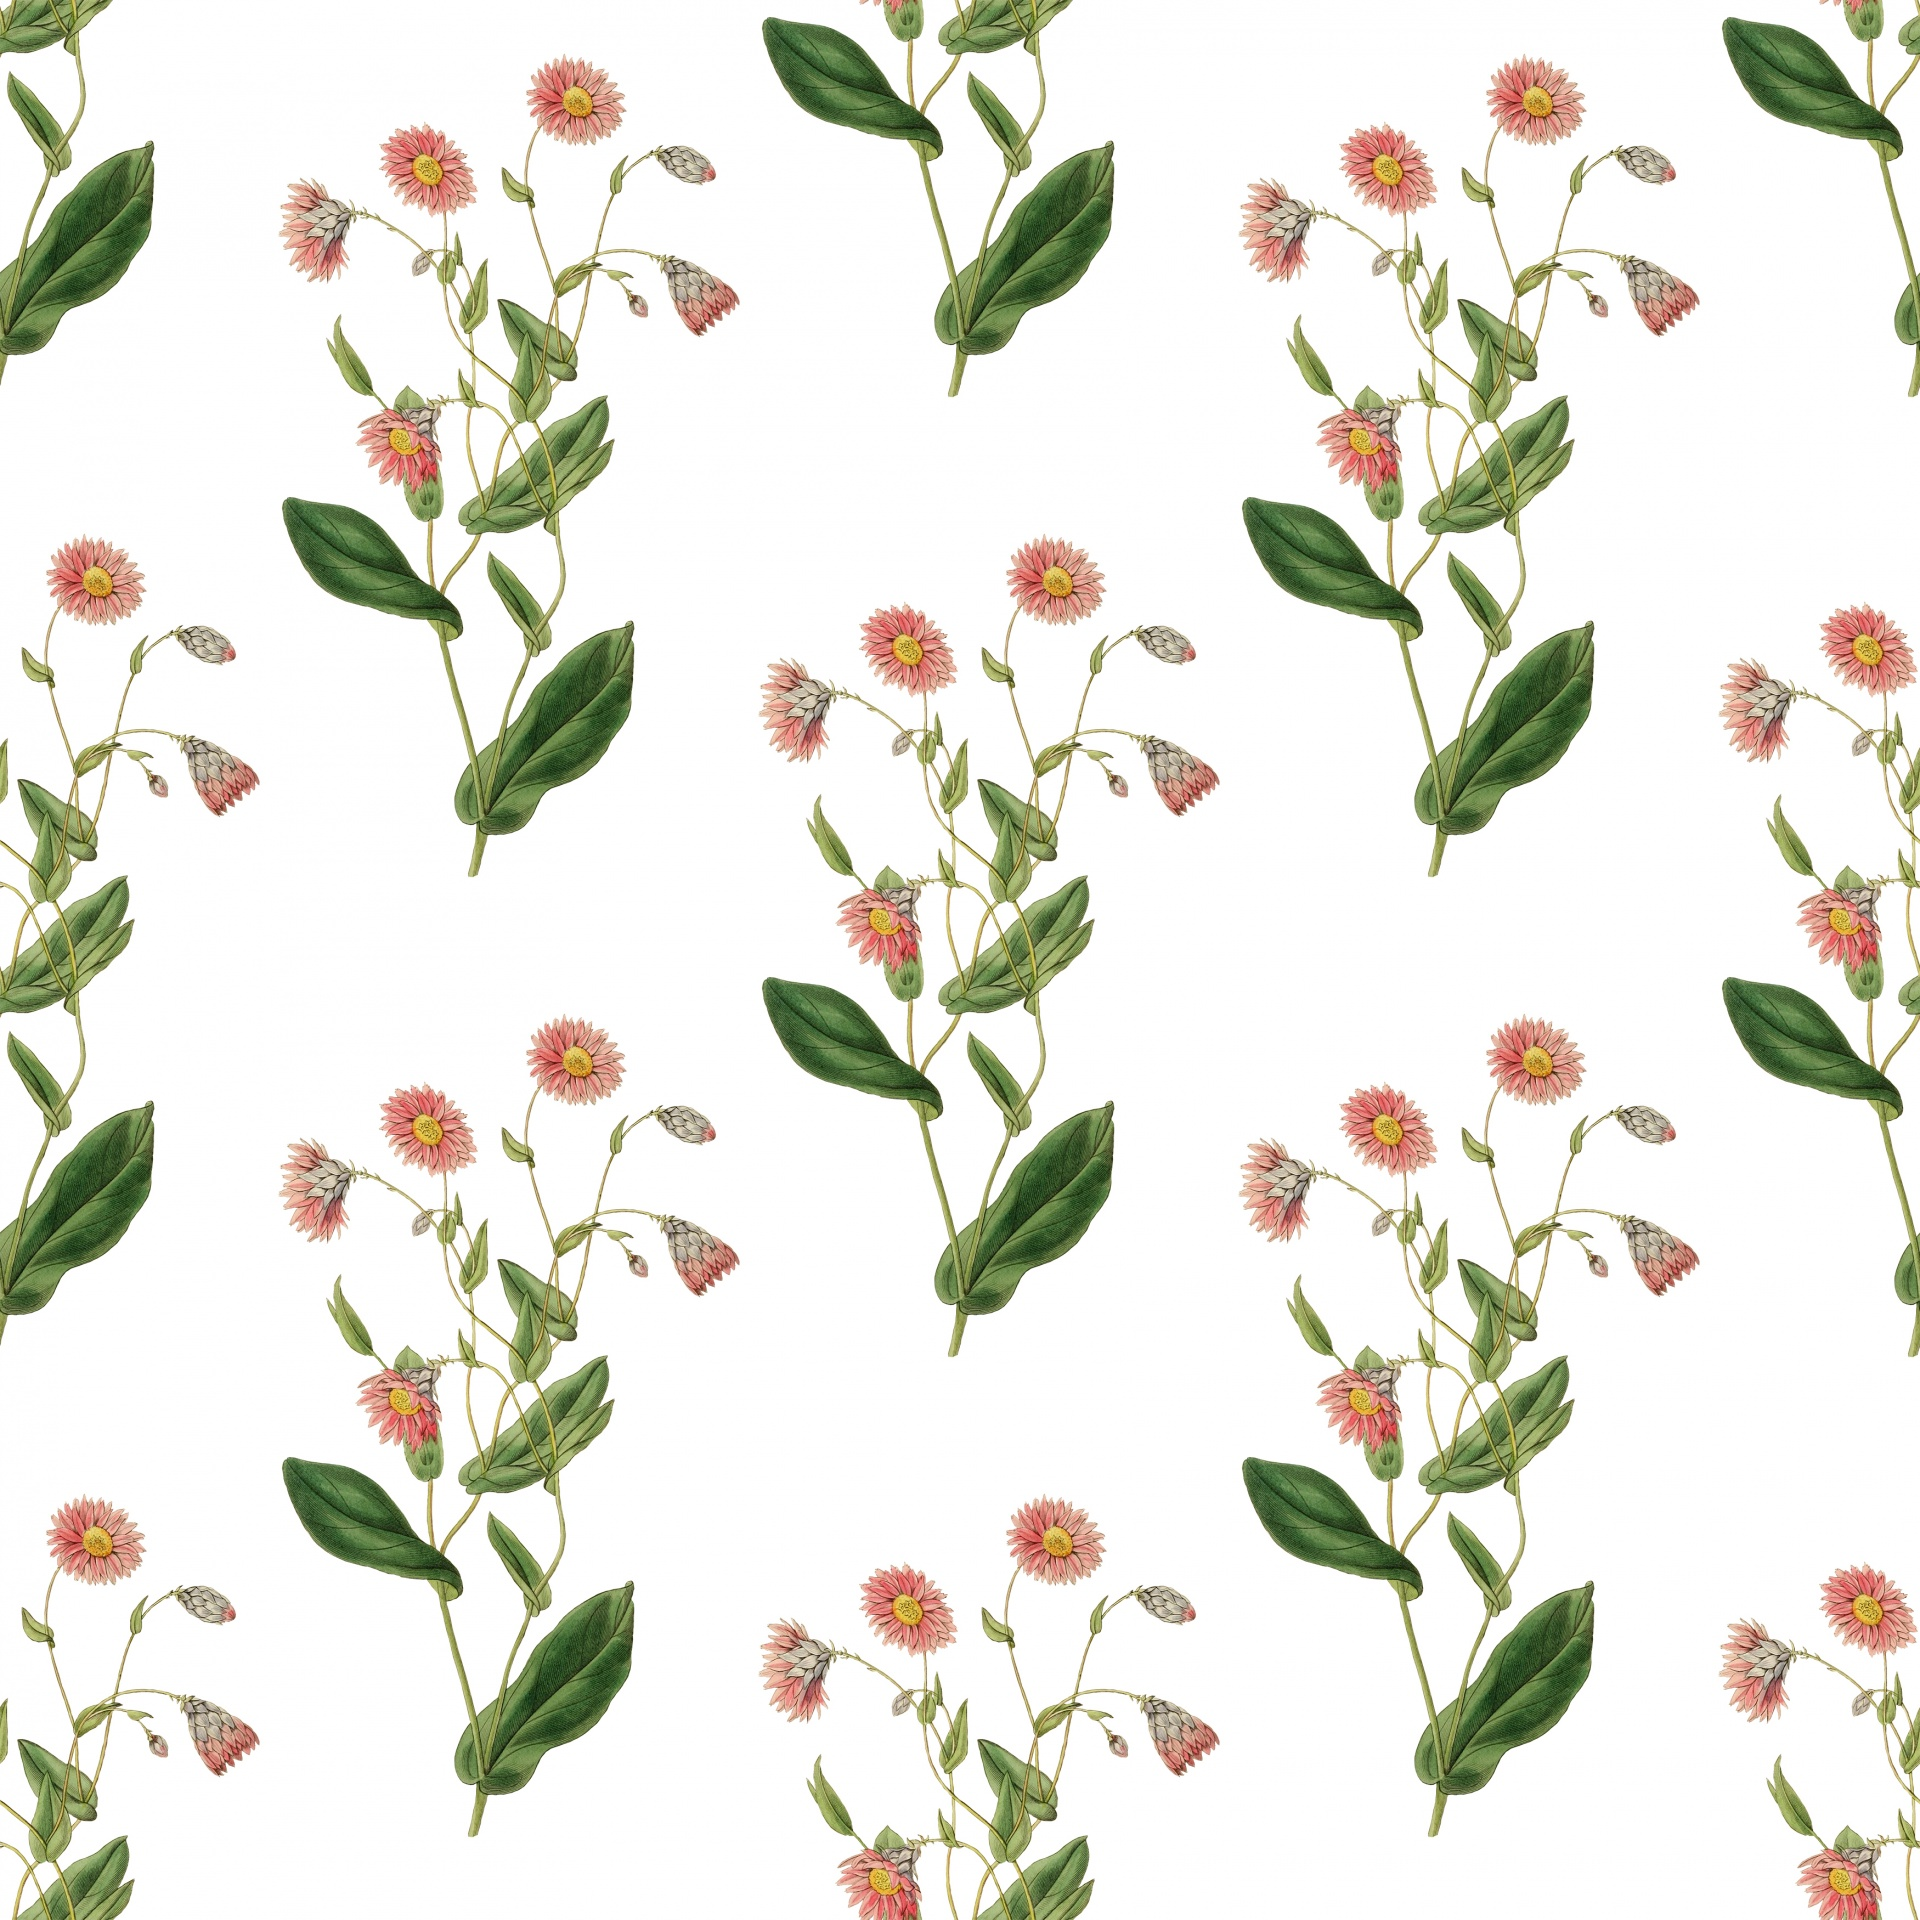 Flowers Vintage Floral Background Wallpaper Free Image From